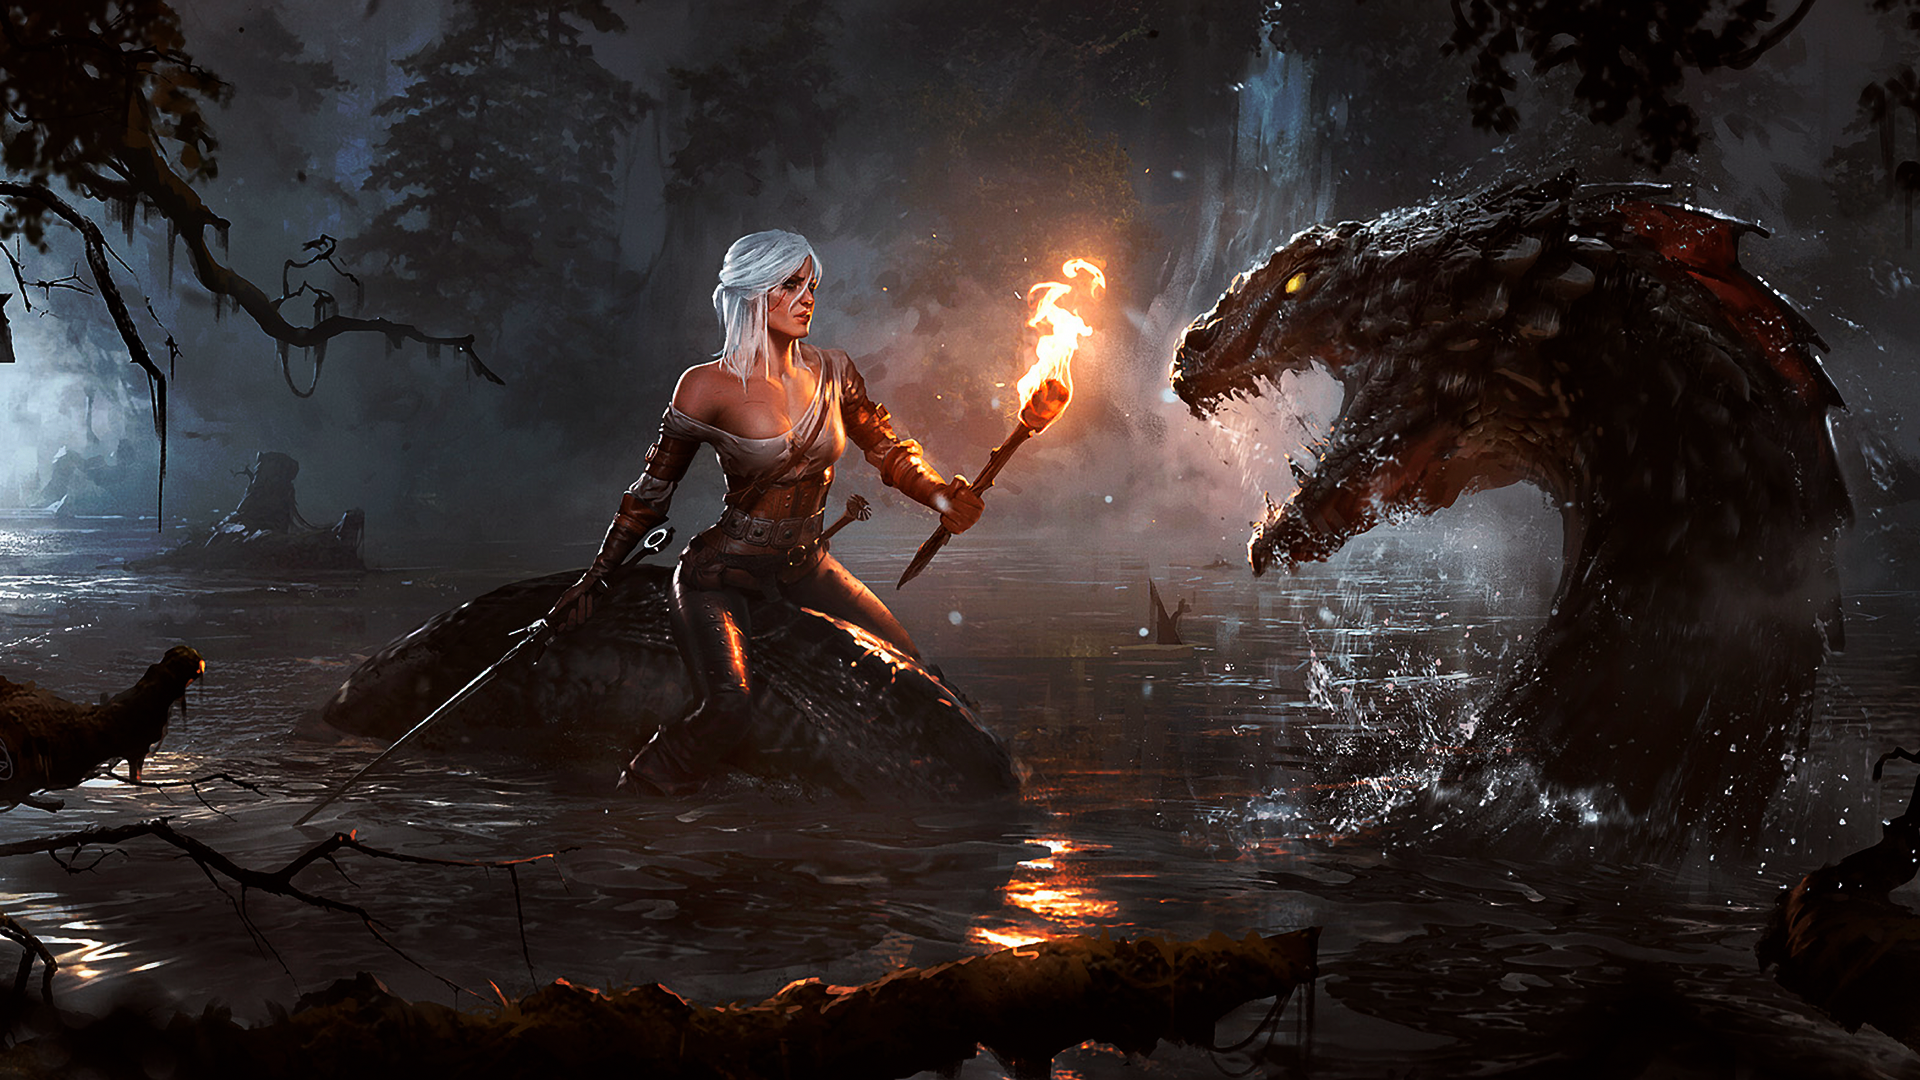 The Witcher Ciri Wallpapers HD Desktop and Mobile 1920x1080